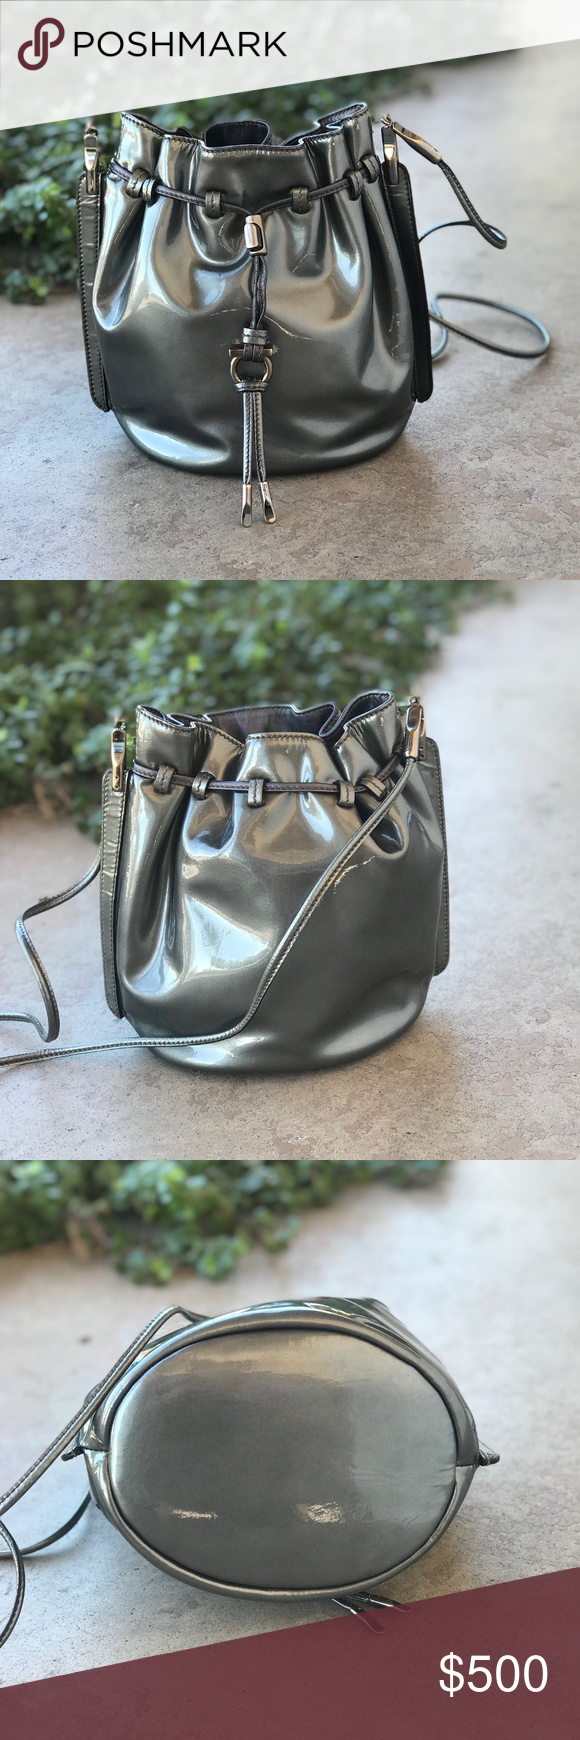 Salvatore Ferragamo Silver Patent Bucket Bag Authentic vintage Salvatore  Ferragamo silver patent leather crossbody bucket bag with drawstring top. 18b43250e6c27